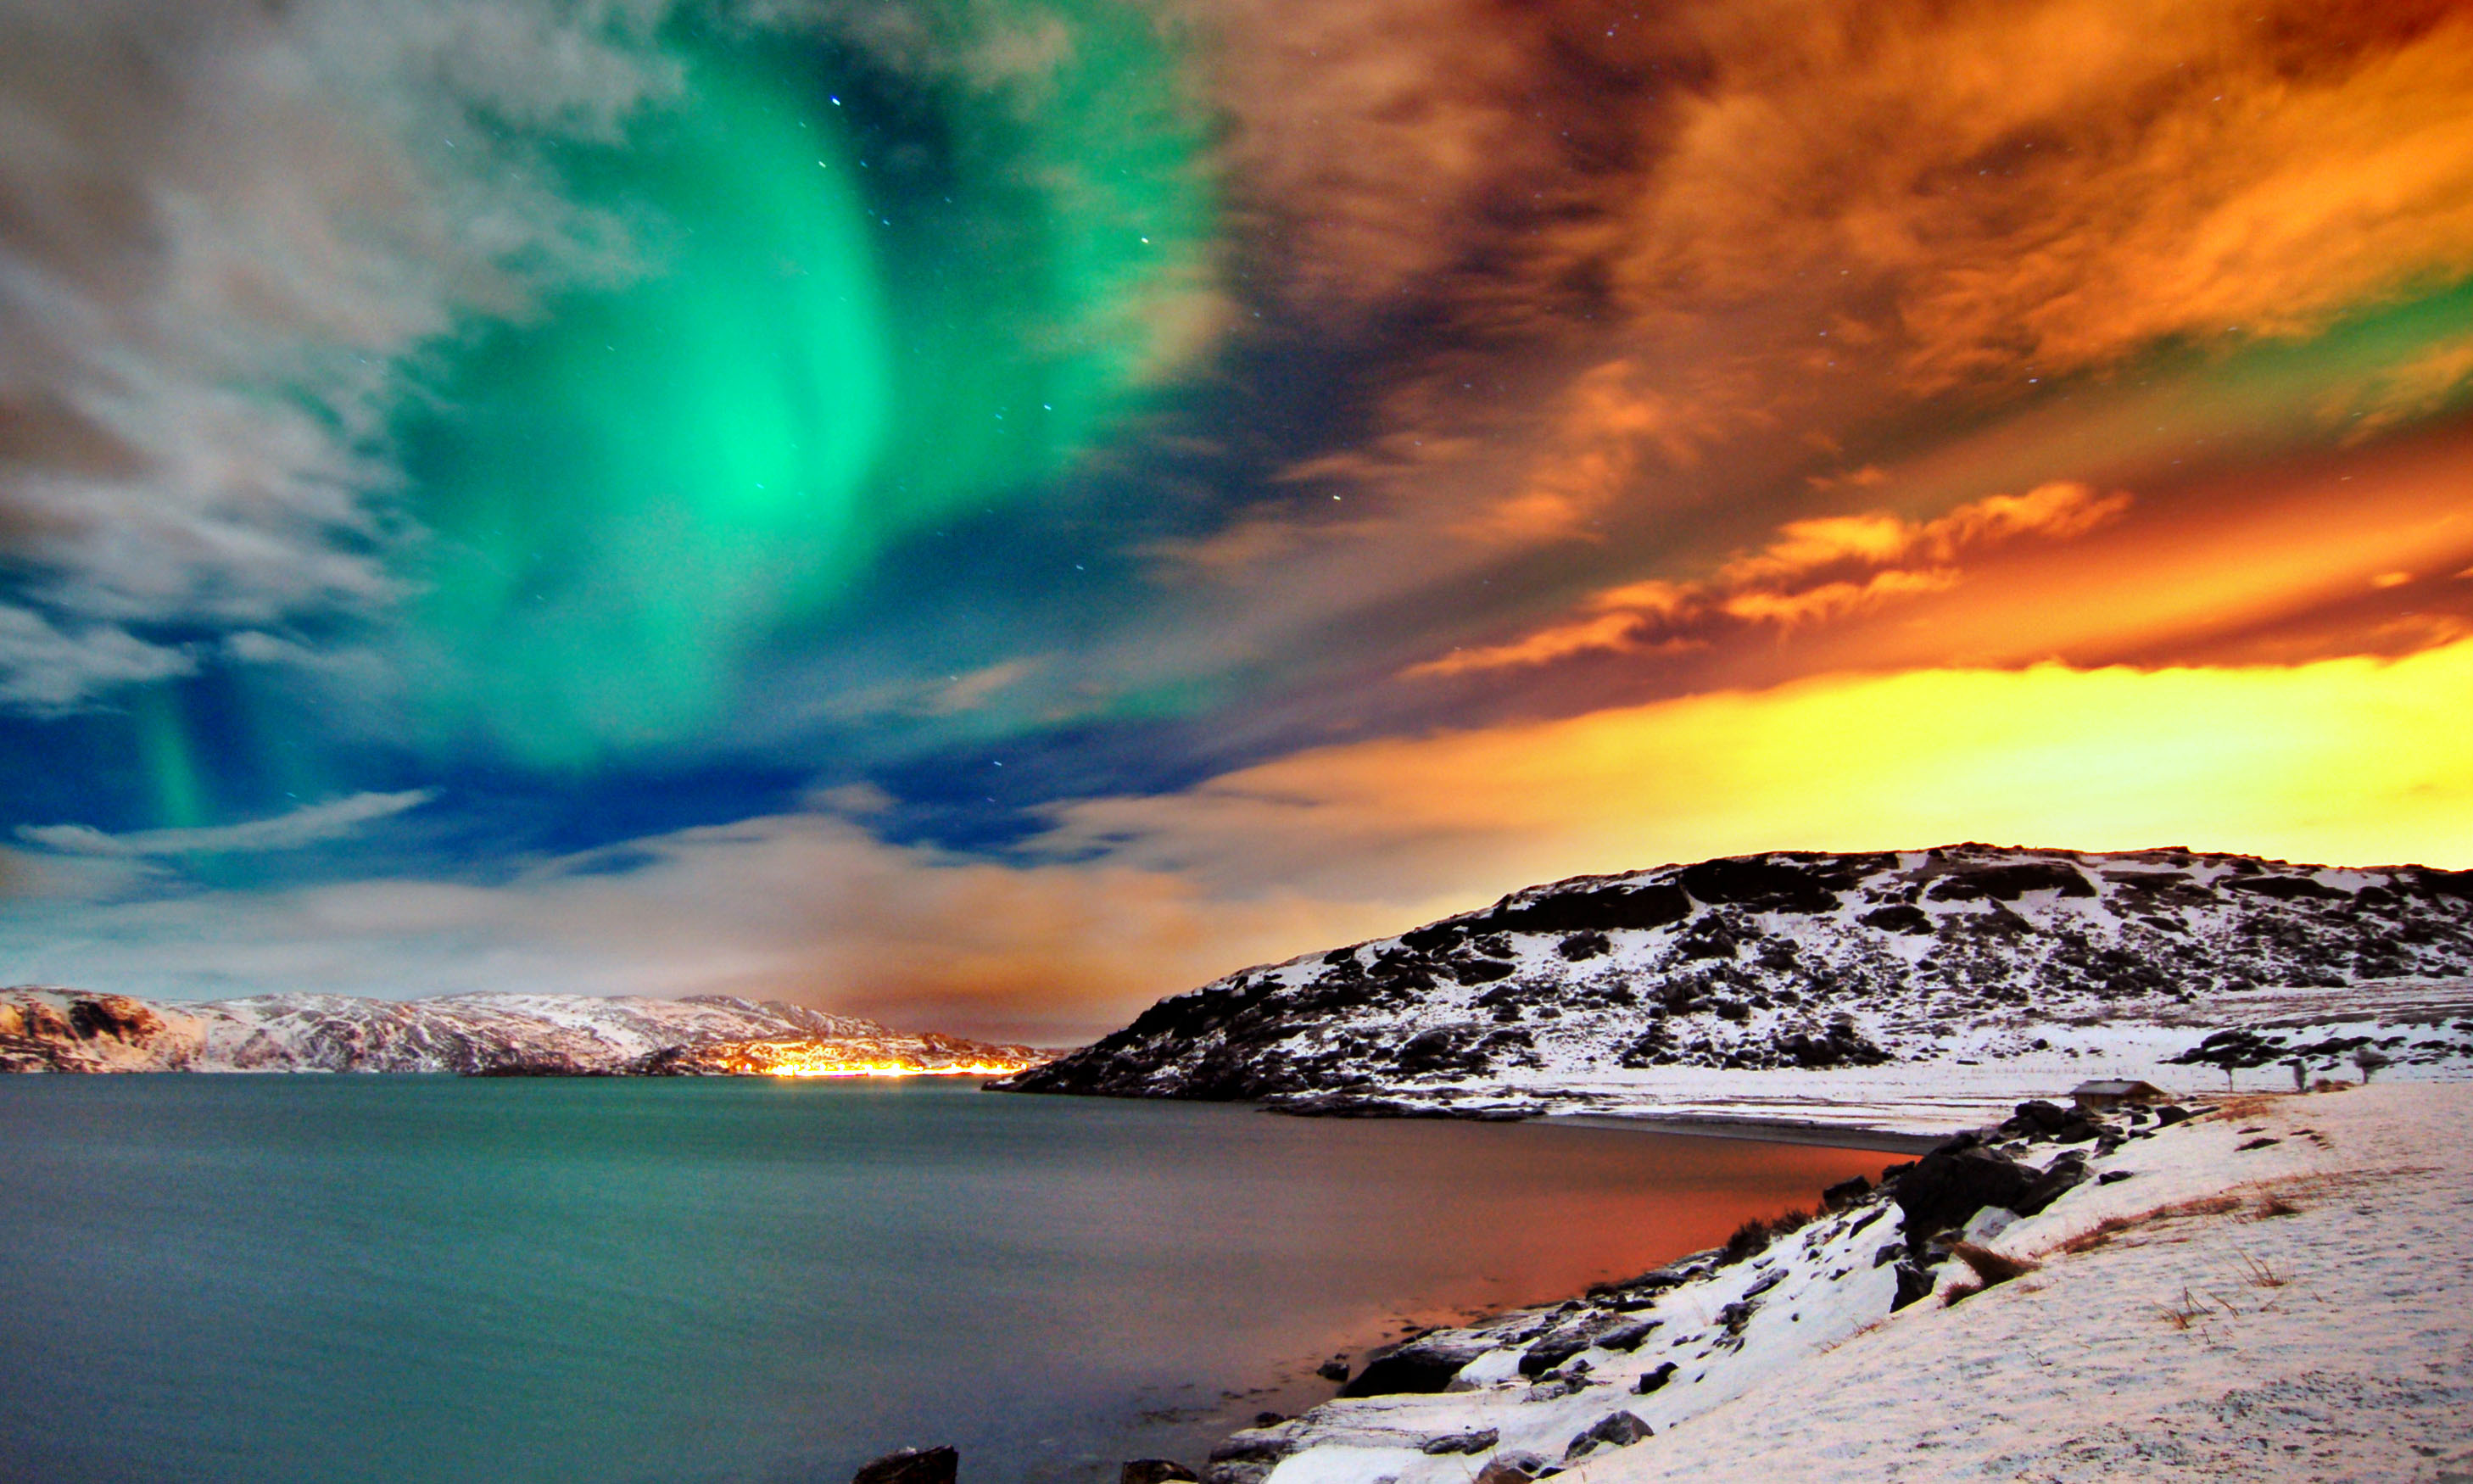 Image - Hd-wallpapers-northern-lights-norway-fan-full-1080p